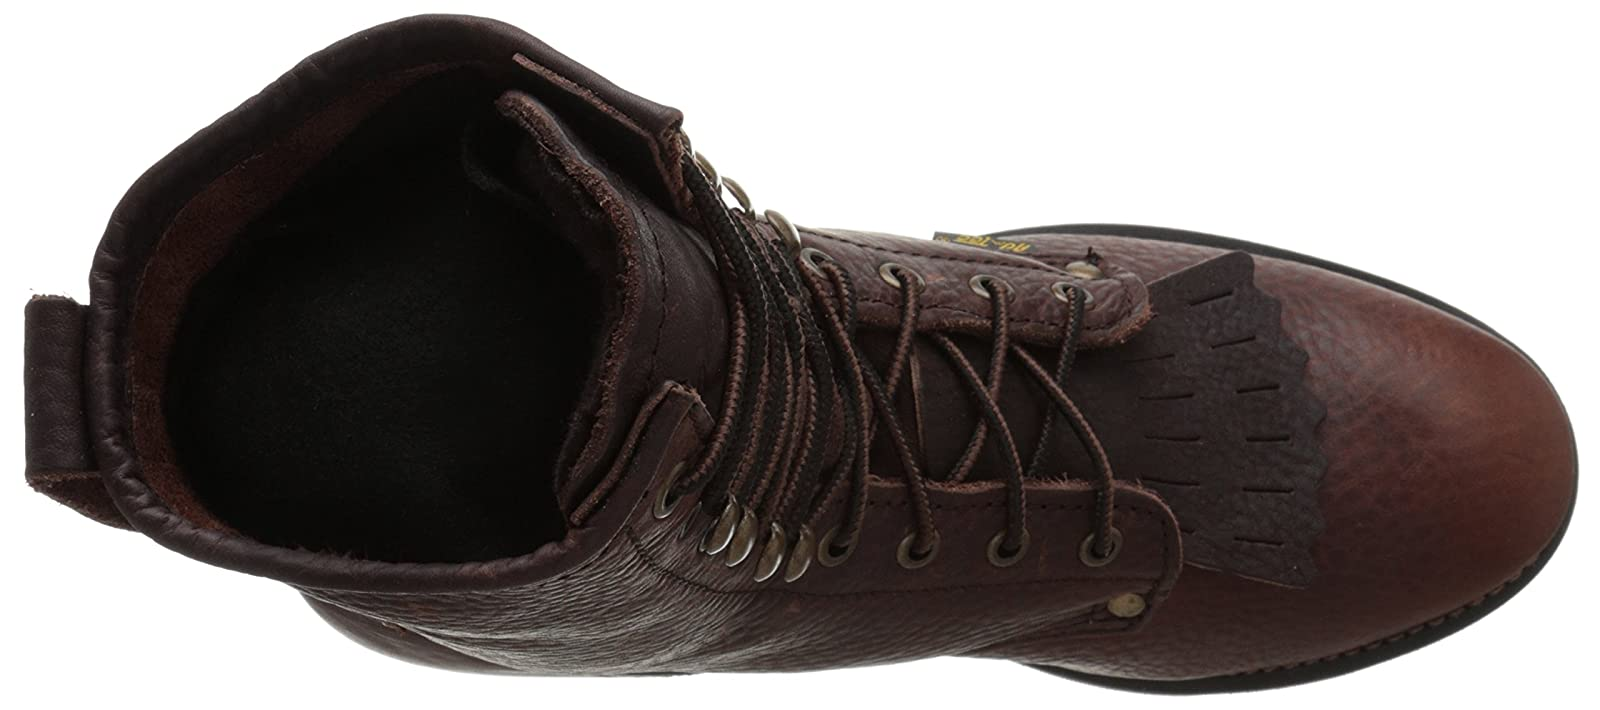 Adtec Men's 9 Inch Packer-M Boot Chestnut 9 M US - 8